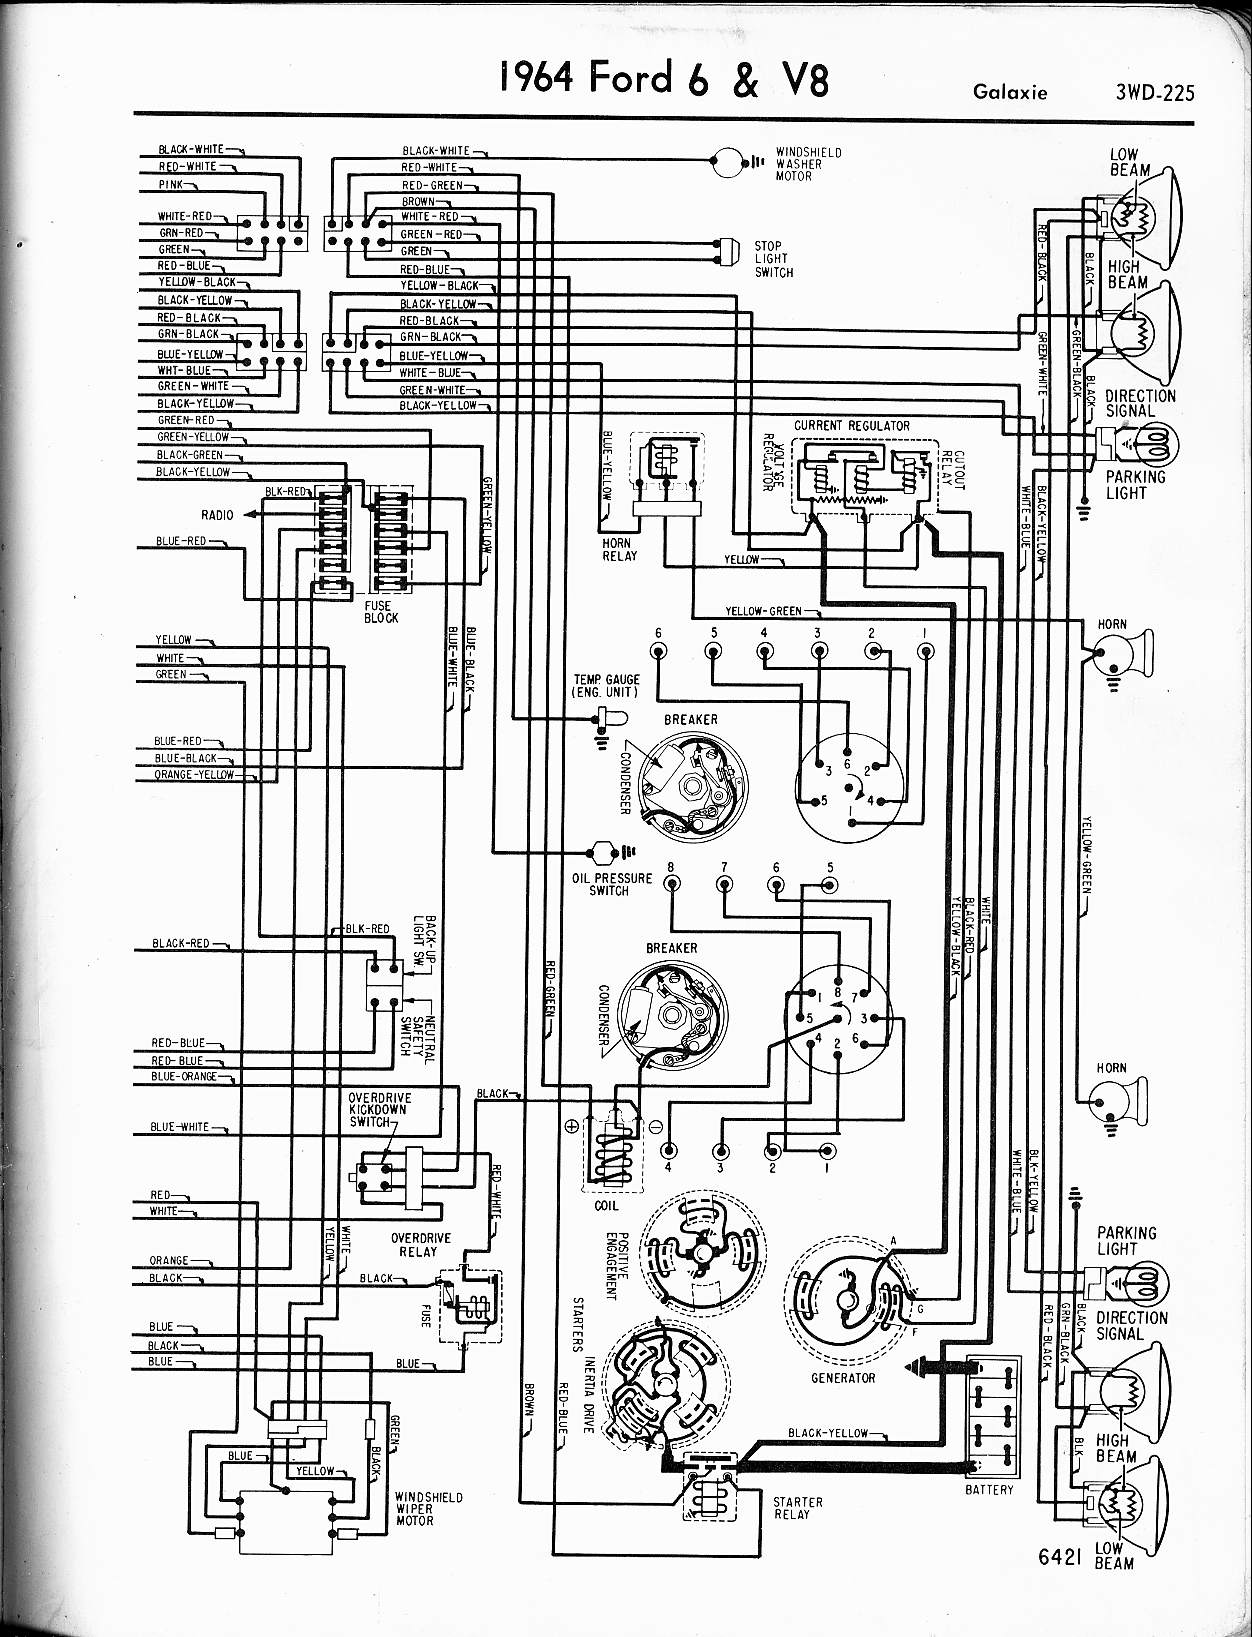 MWire5765 225 64 falcon wiring diagram 64 comet ignition wiring \u2022 wiring ba falcon wiring diagram free download at nearapp.co